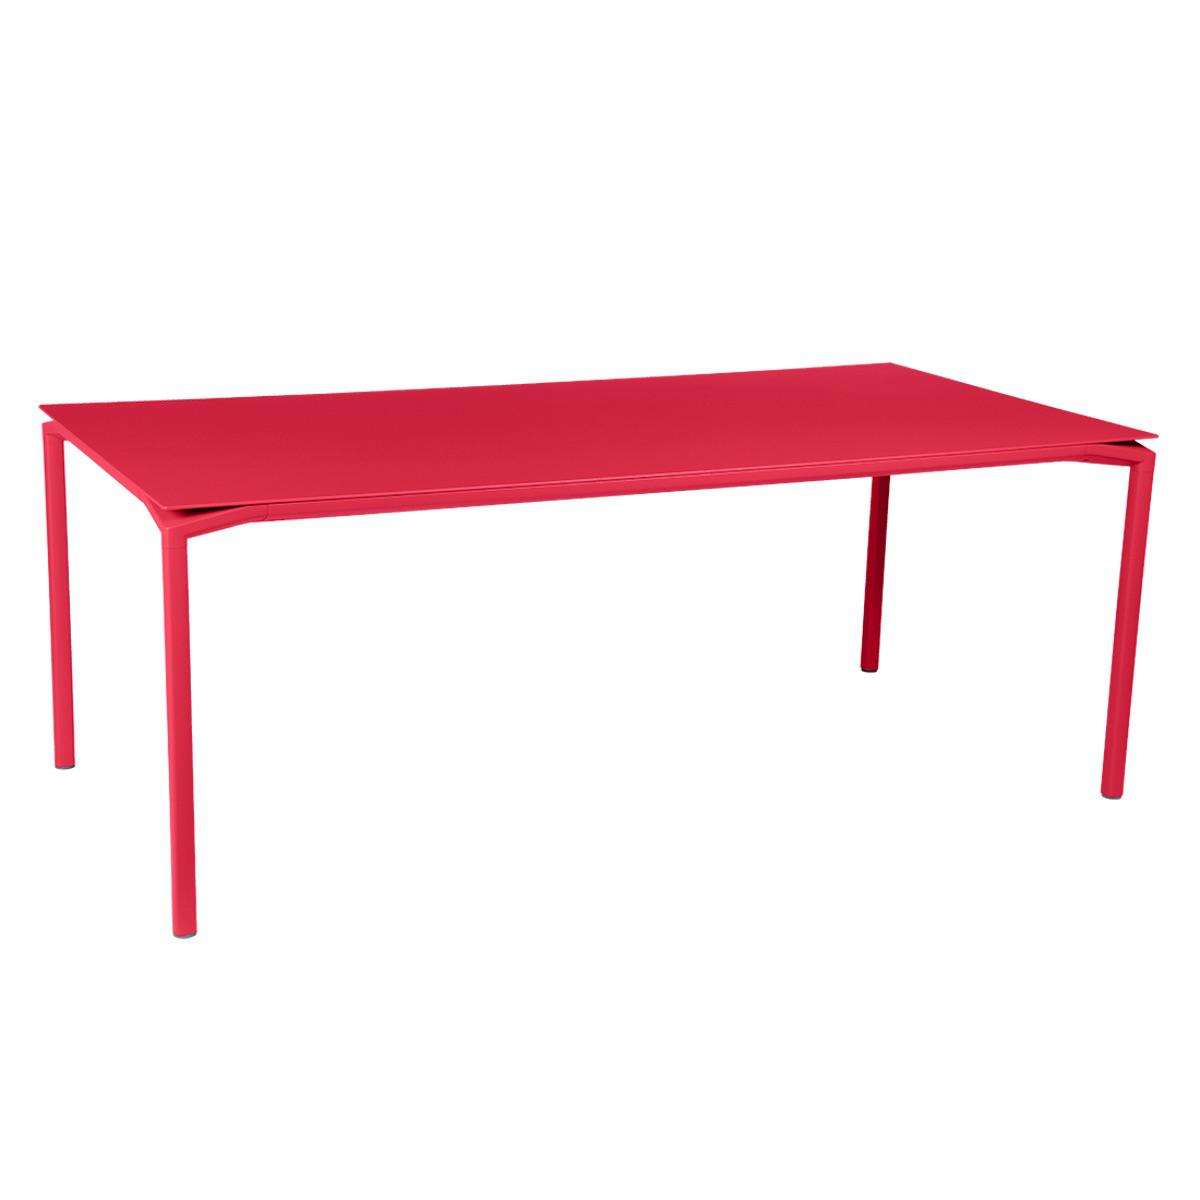 Table 95x195cm CALVI Fermob rose praline